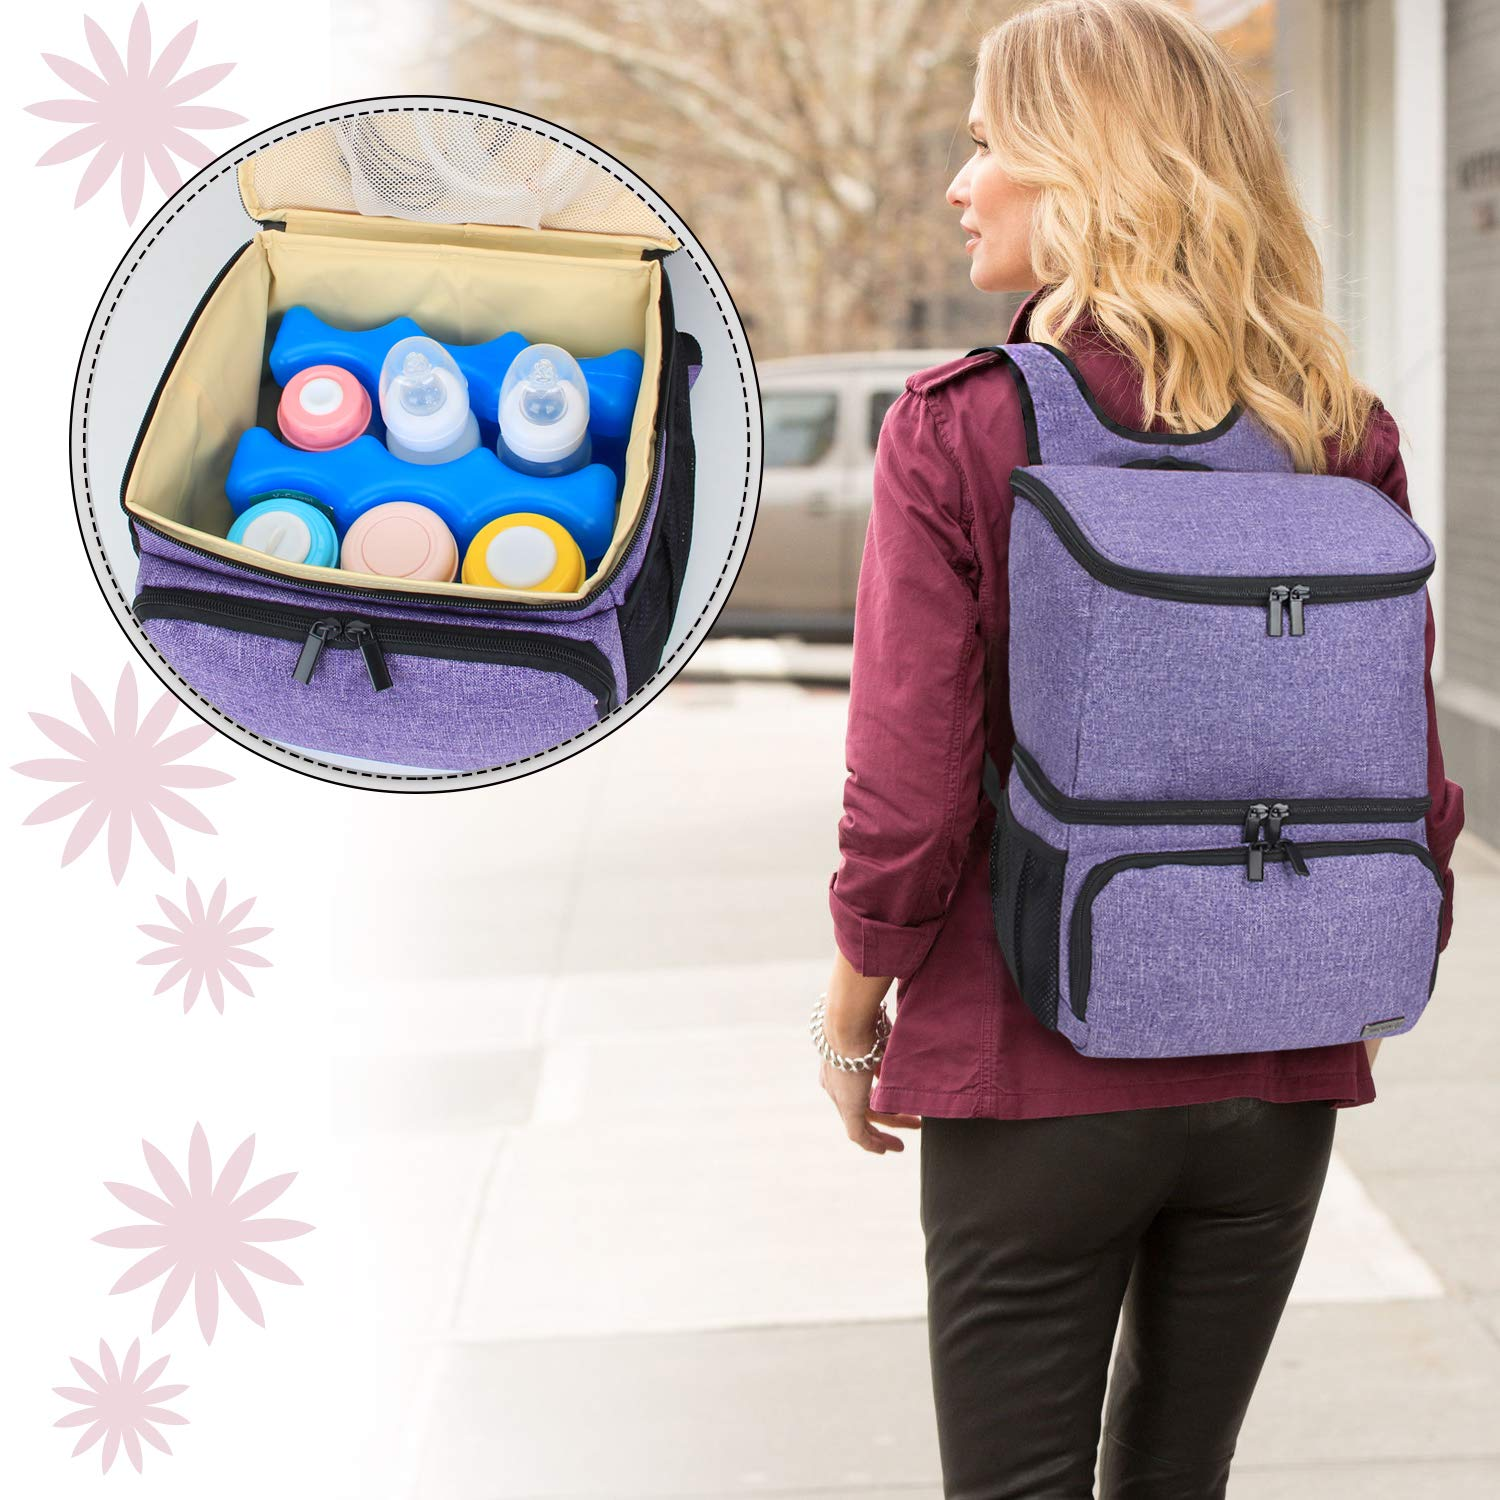 Teamoy Breast Pump Bag Tote with Cooler Compartment for Breast Pump Double Layer Pumping Bag for Working Moms Cooler Bag Purple Breast Milk Bottles and More Bag Only